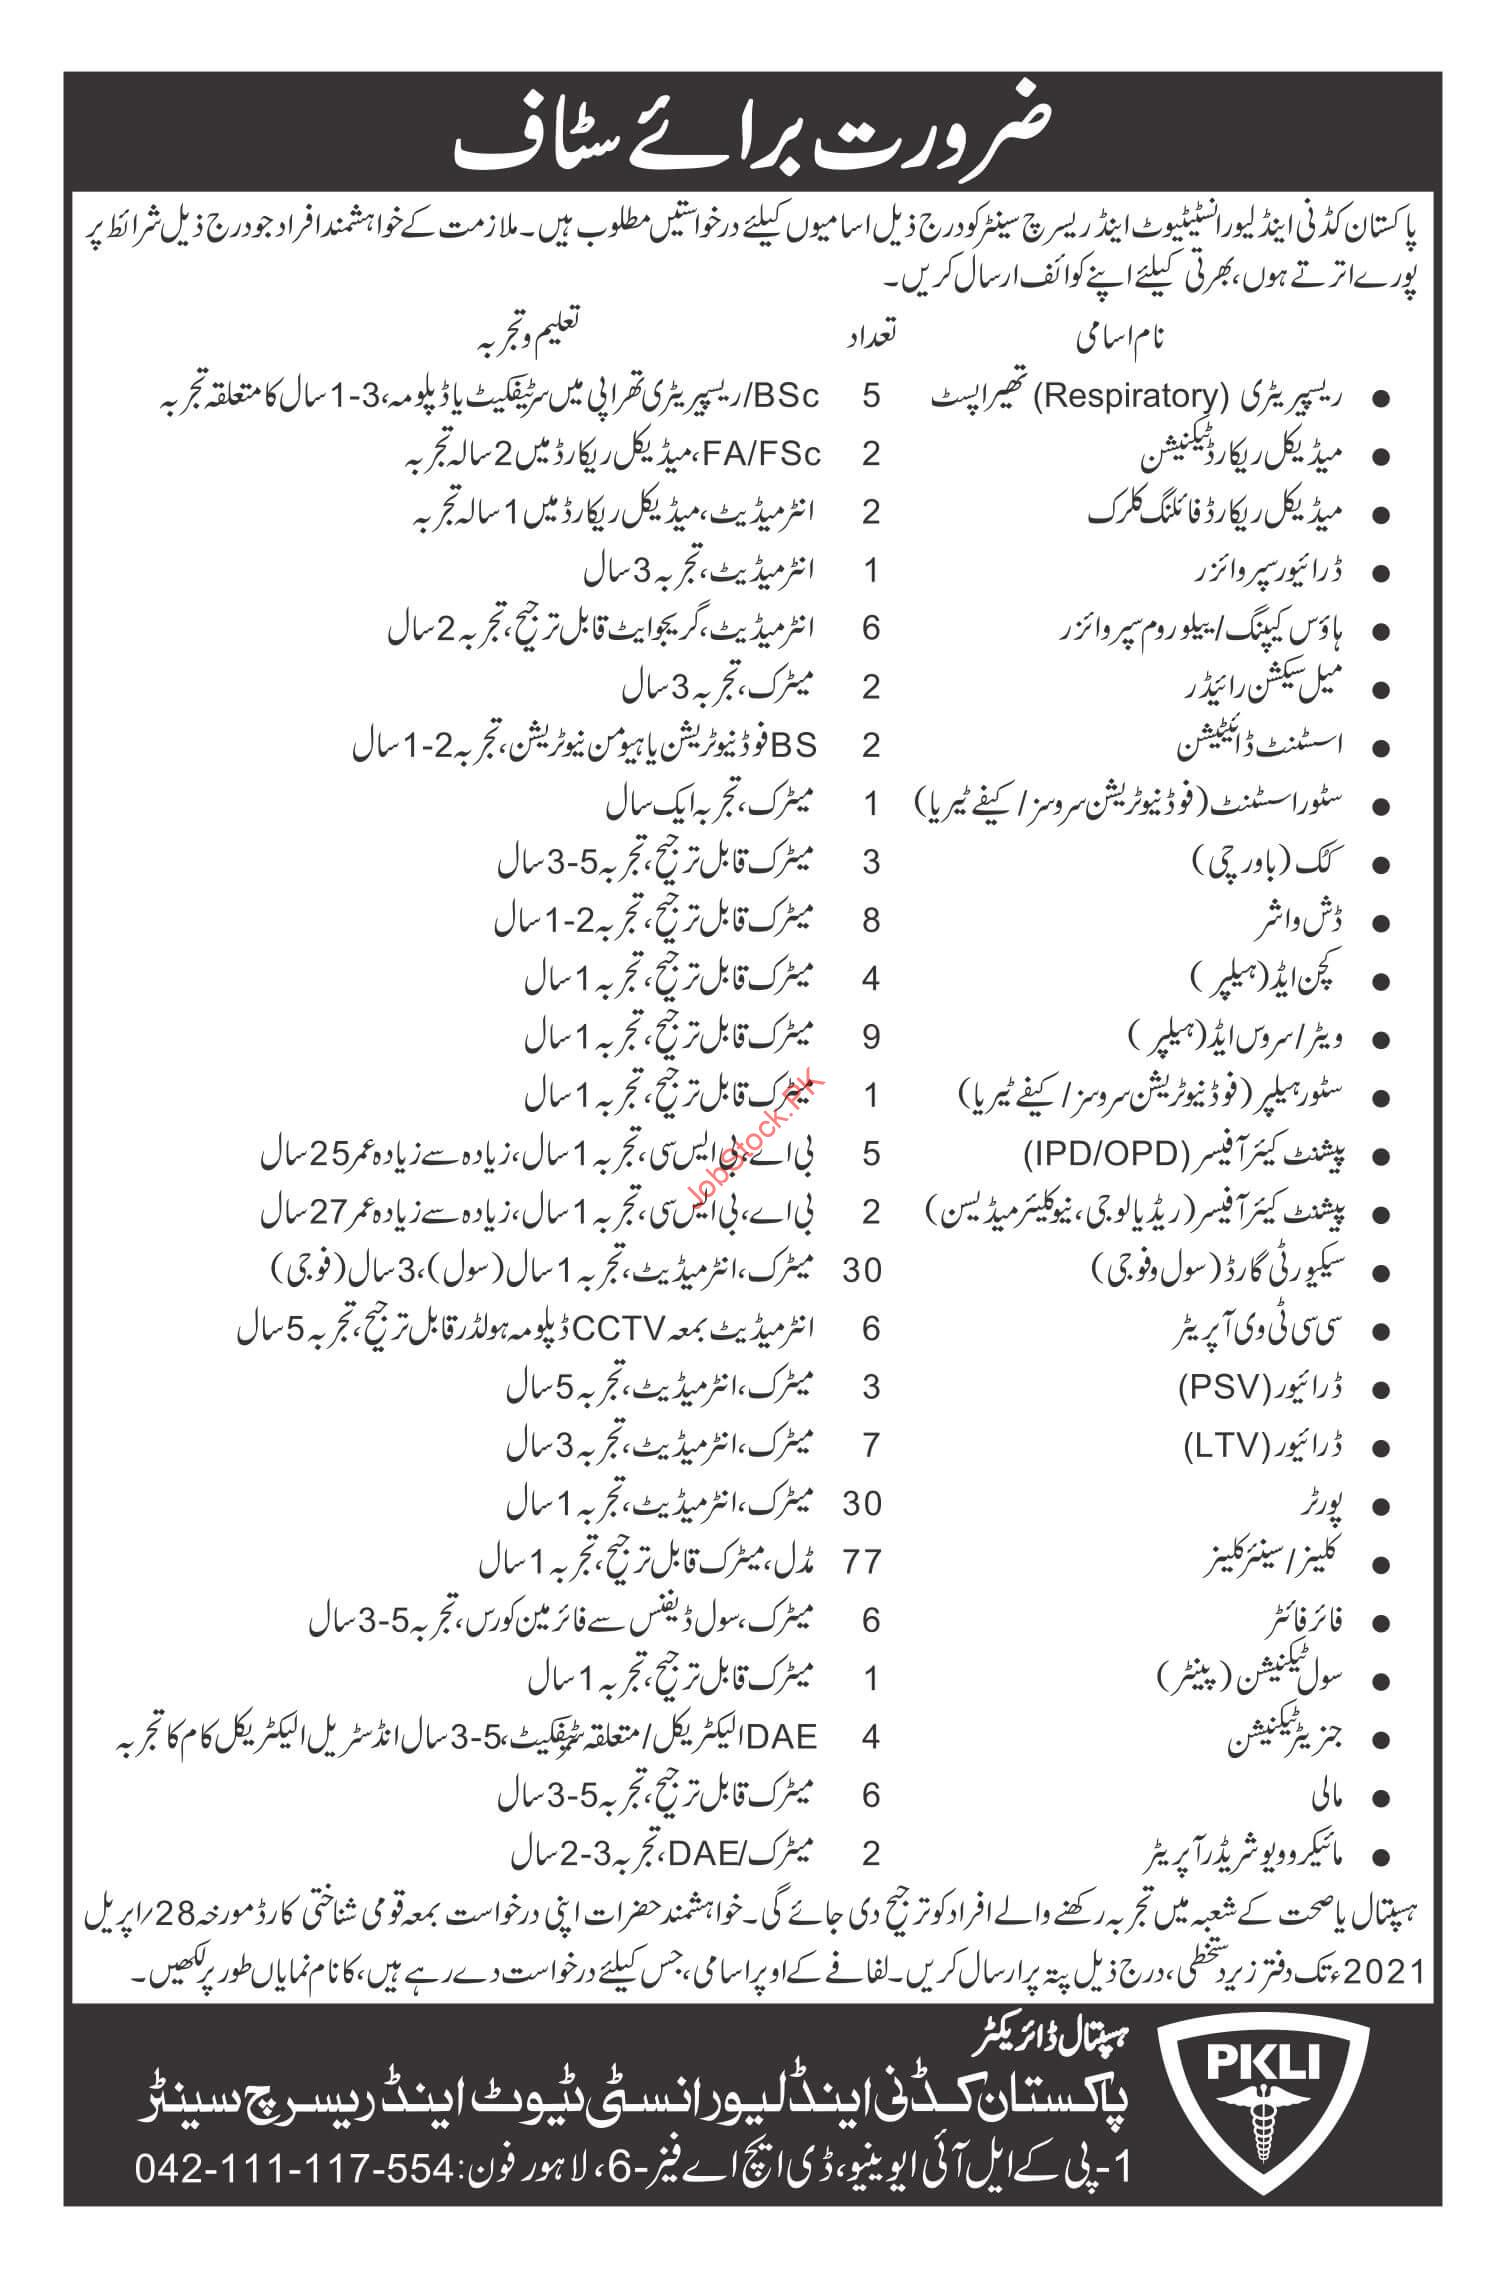 Pakistan Kidney And Liver Institute Lahore Jobs 2021